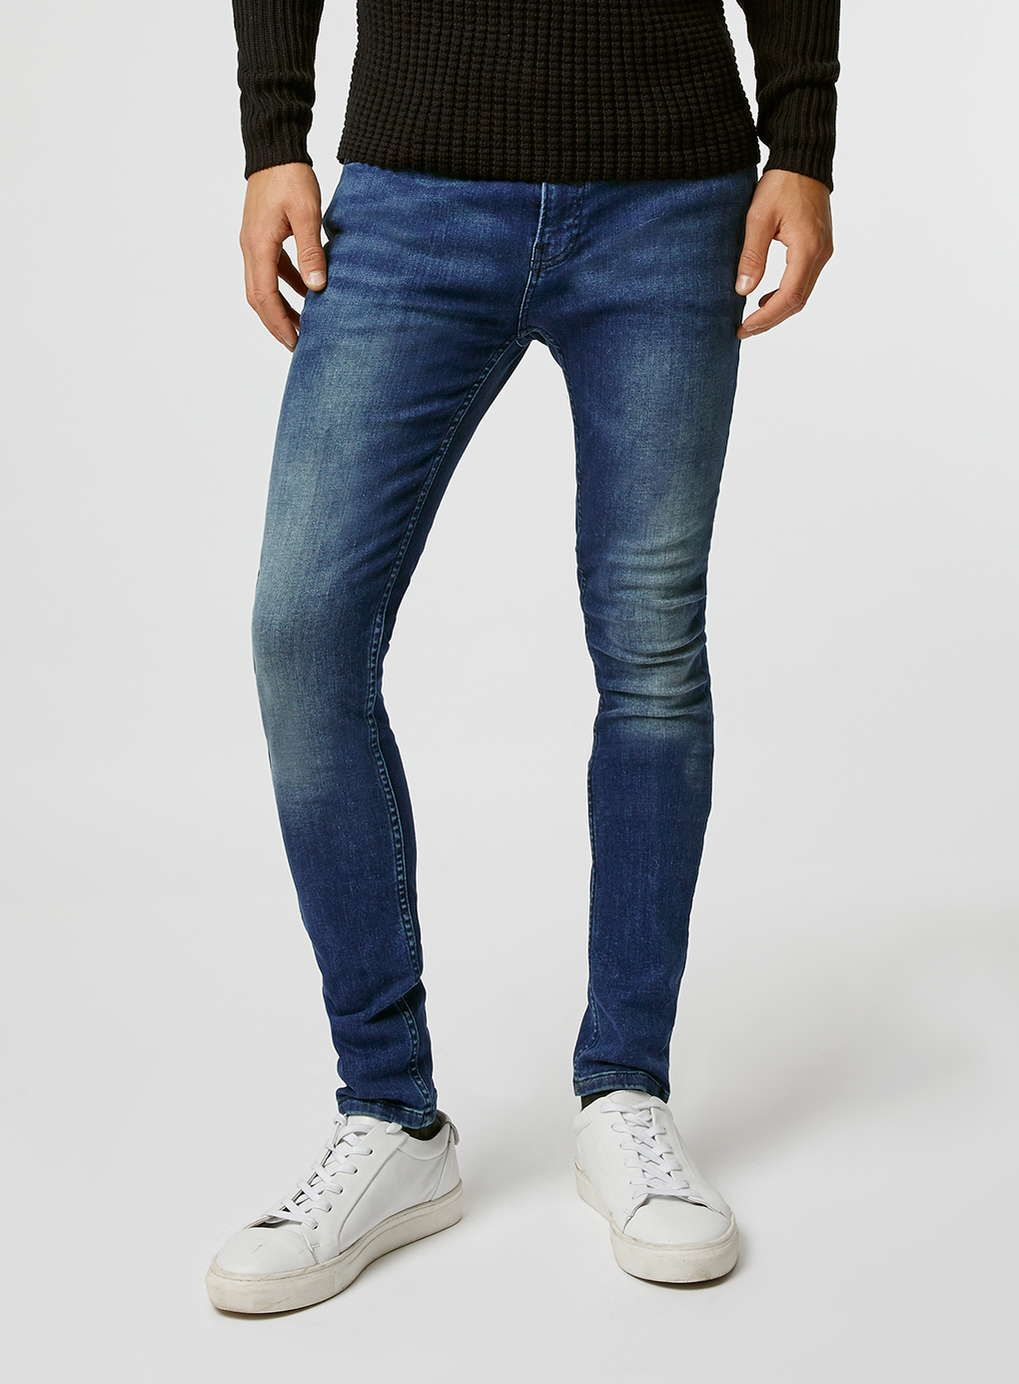 e29347c24c367 10 Ultimate Extreme Super Skinny Jeans For Men Skinny jeans for men ...